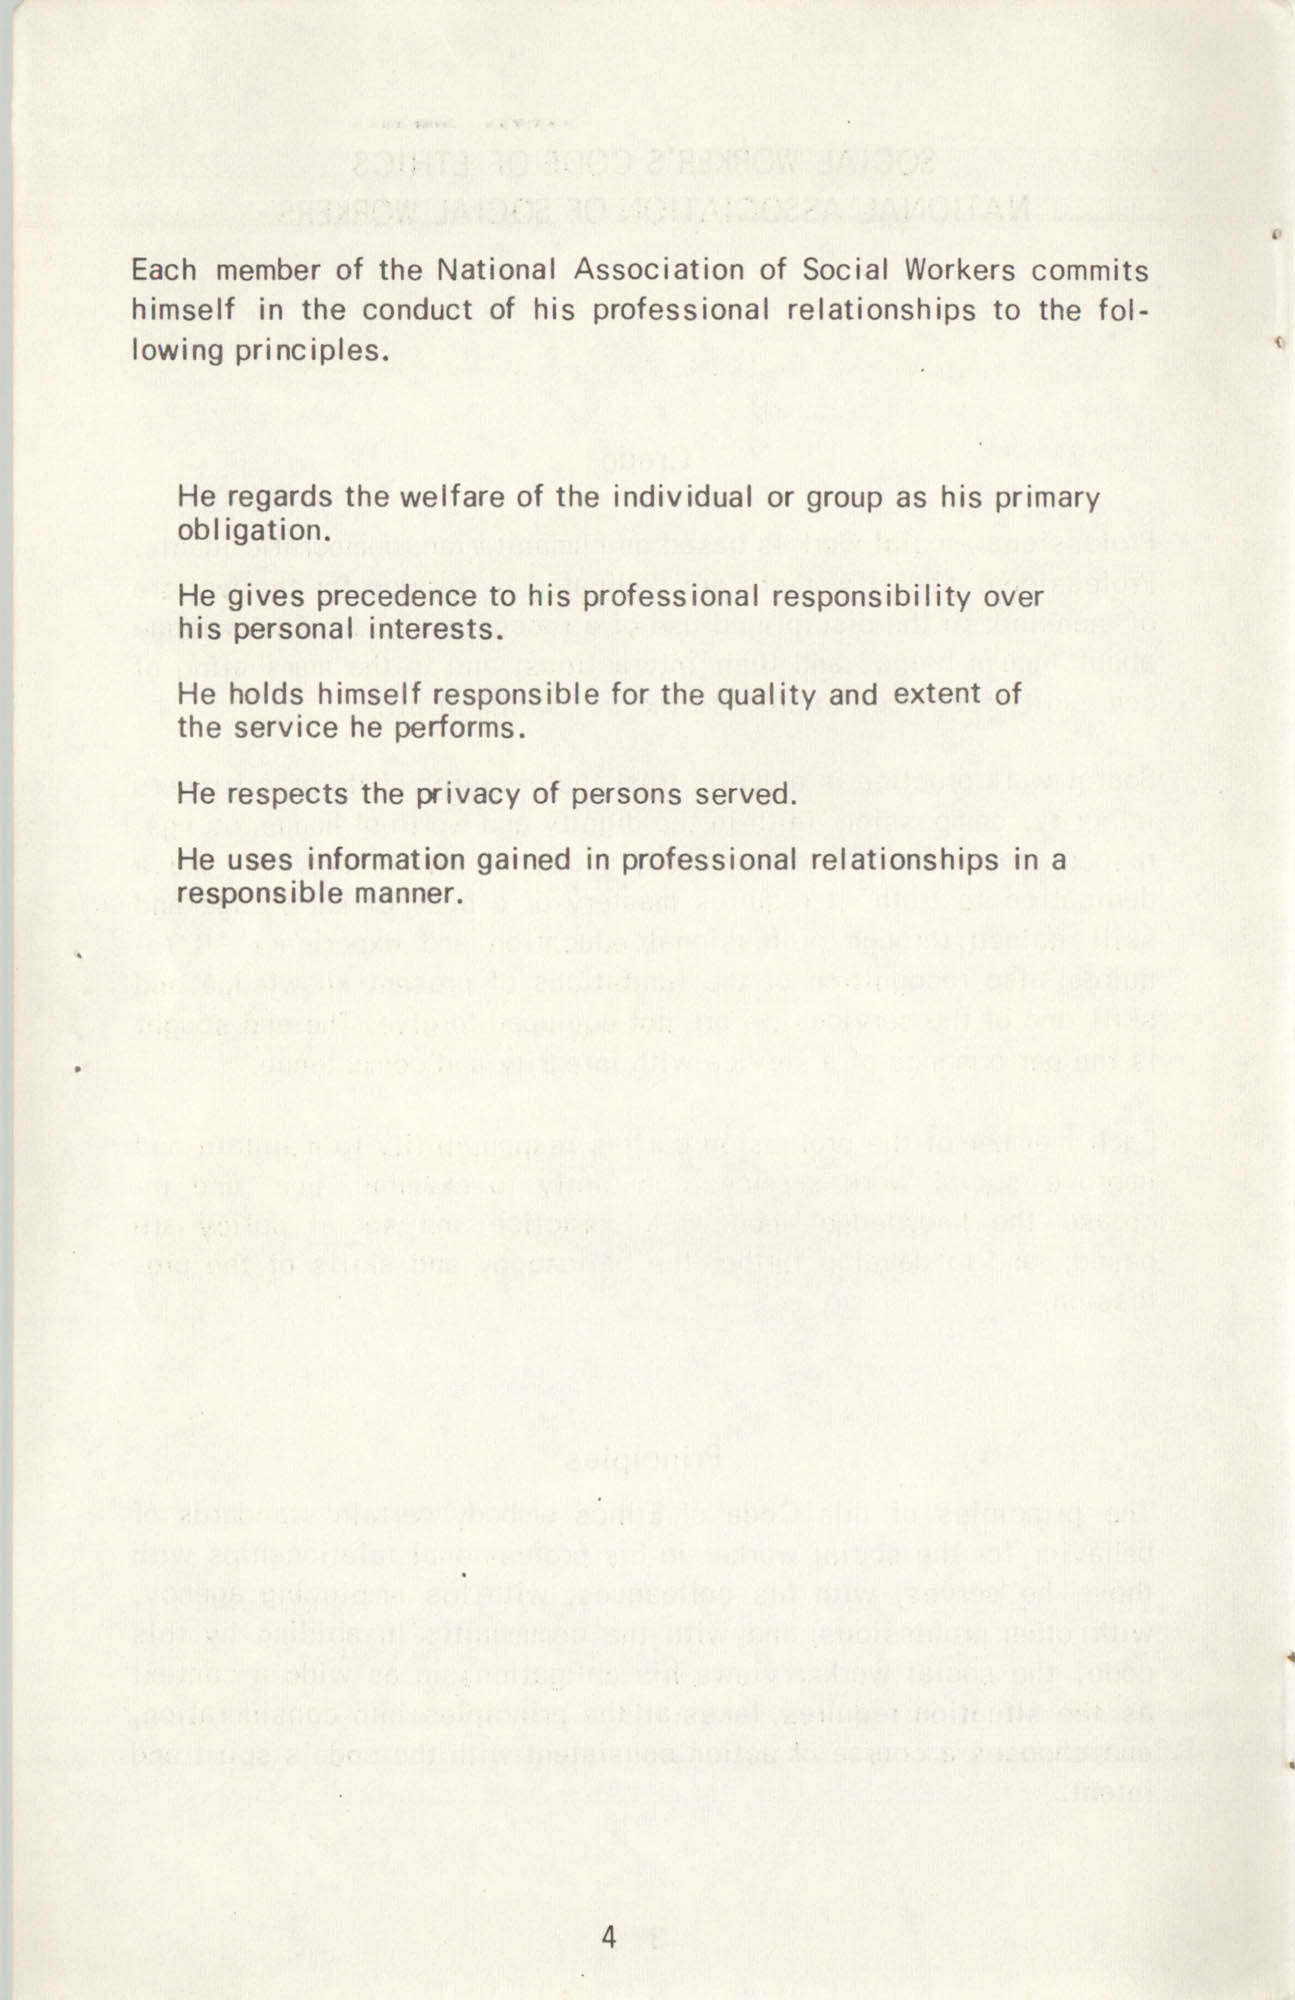 State of South Carolina Directory of Registered Social Workers, 1972, Page 4